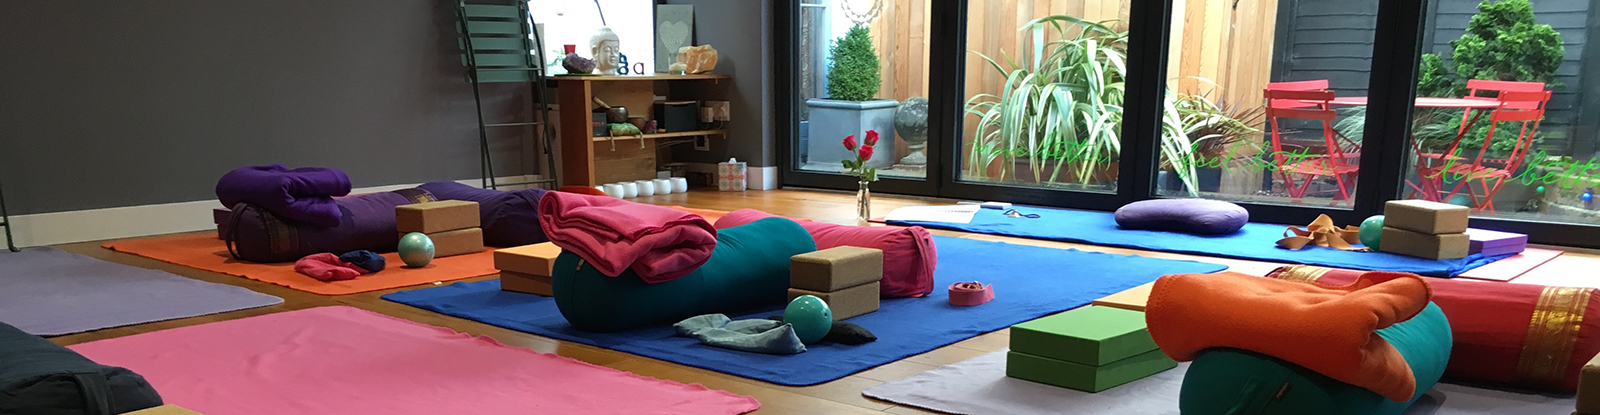 Flow studio used for group yoga